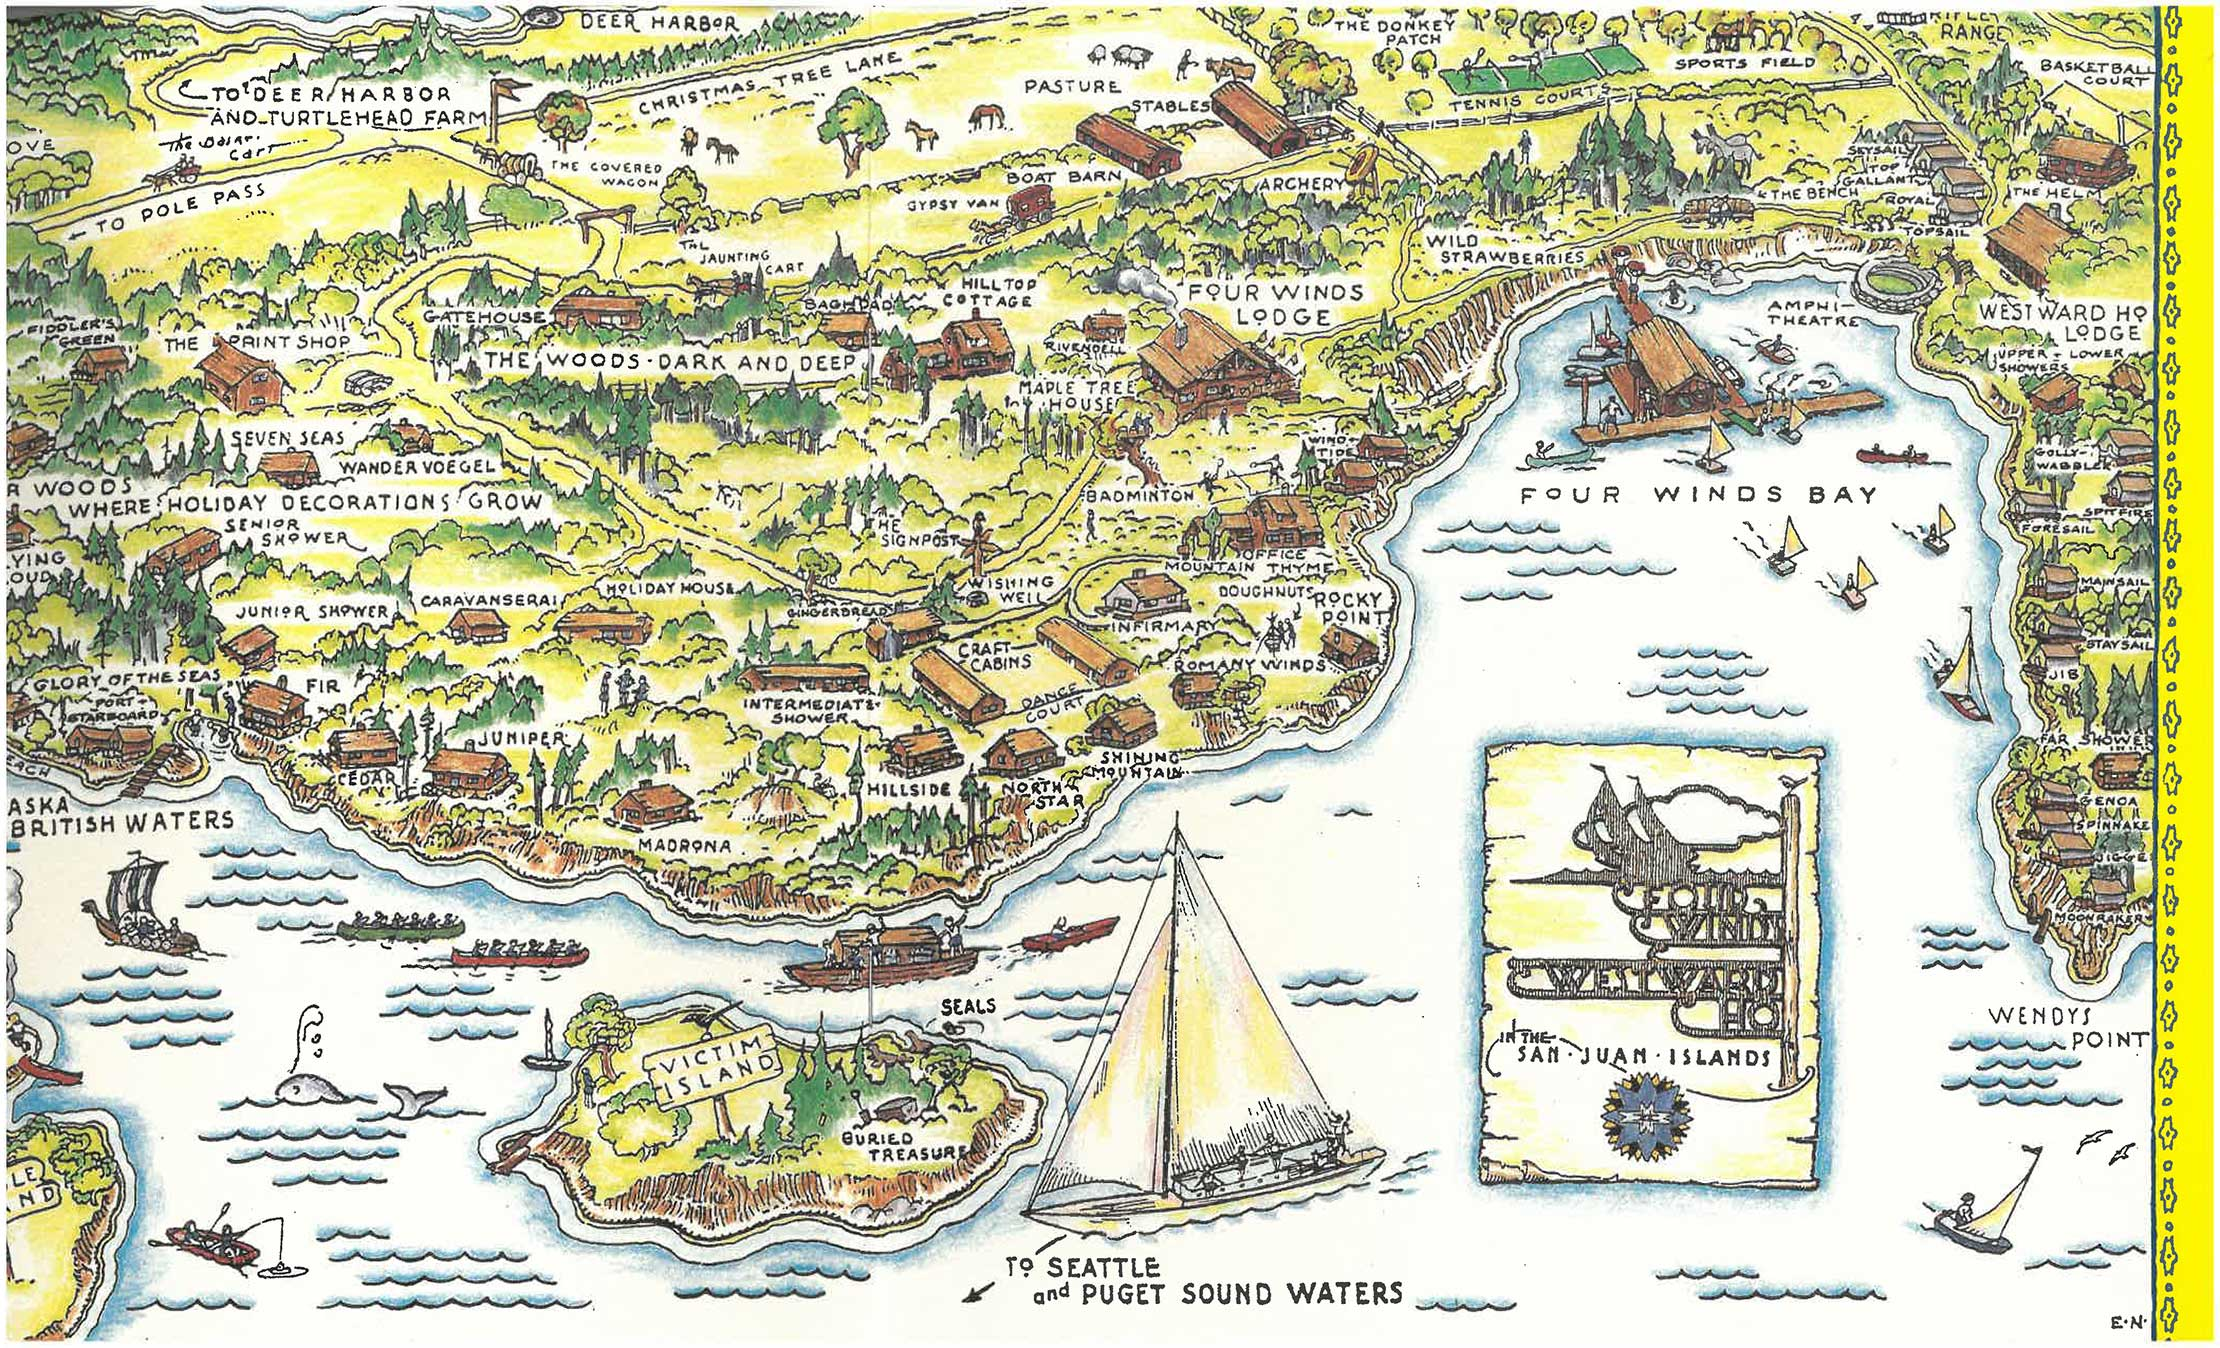 Map of Four Winds Westward Ho camp